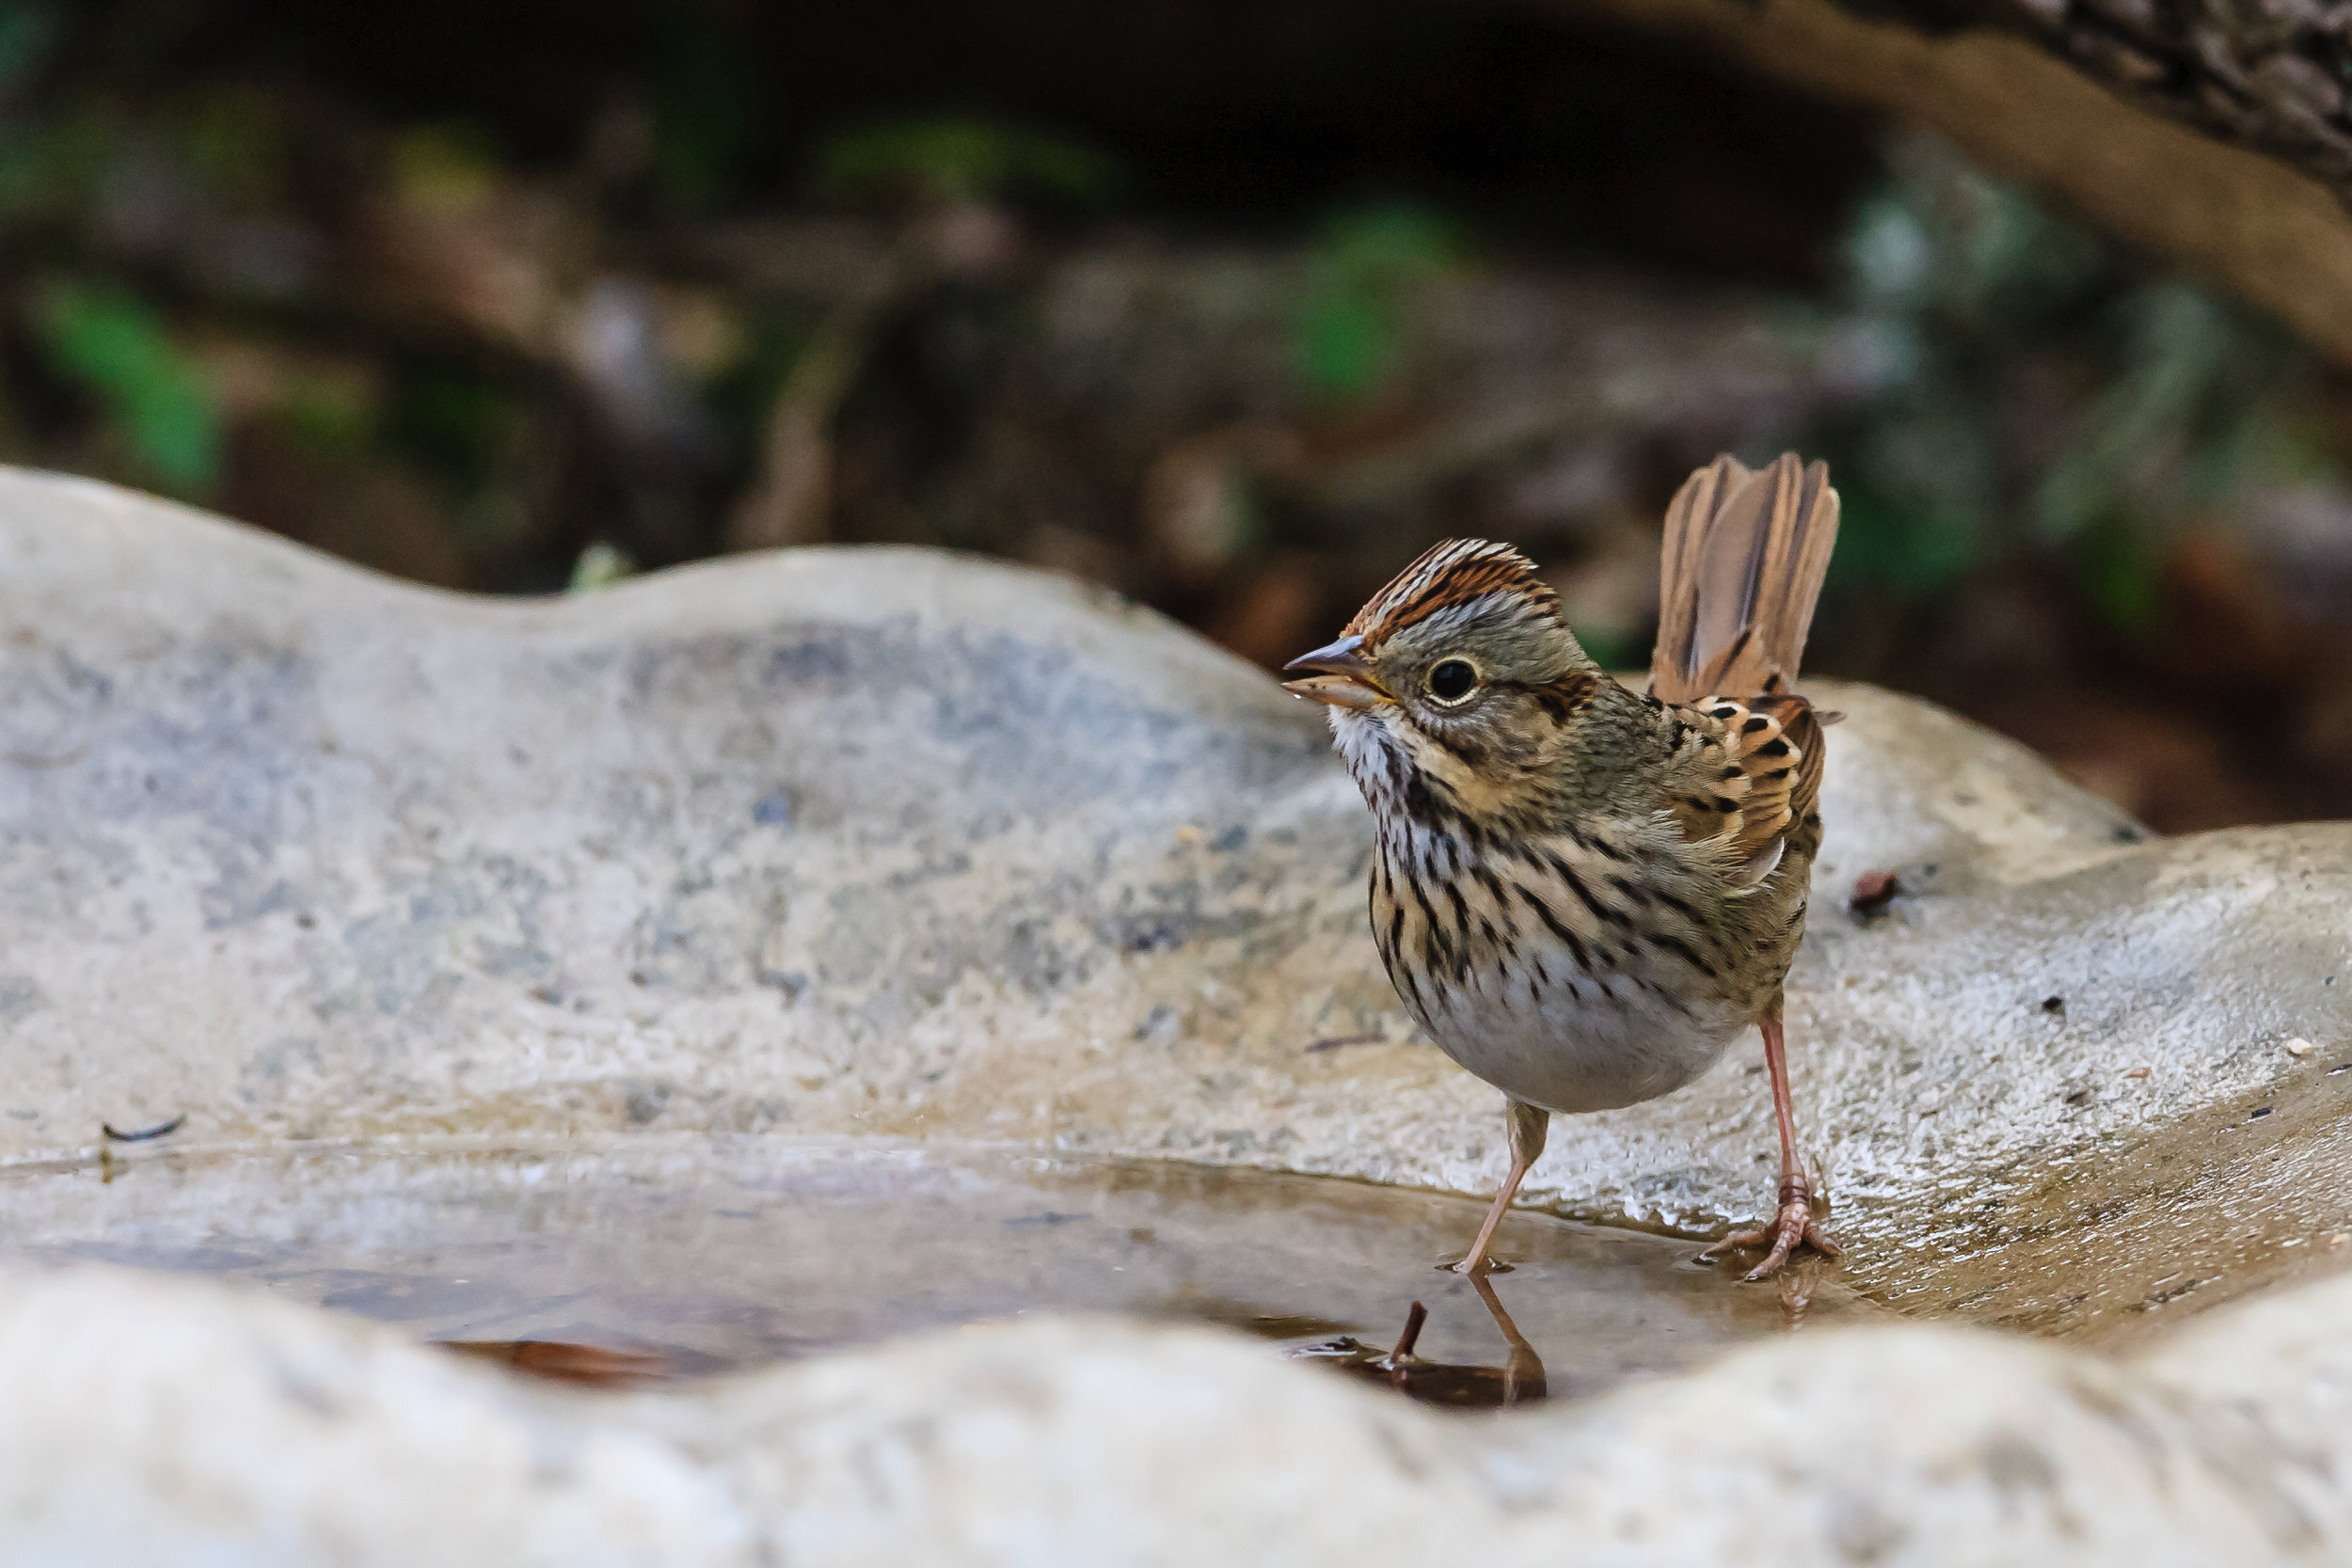 Species: Lincoln's Sparrow Photo Credit: Damian Martinez Date: January 2017 Location: Crescent Bend Nature Park